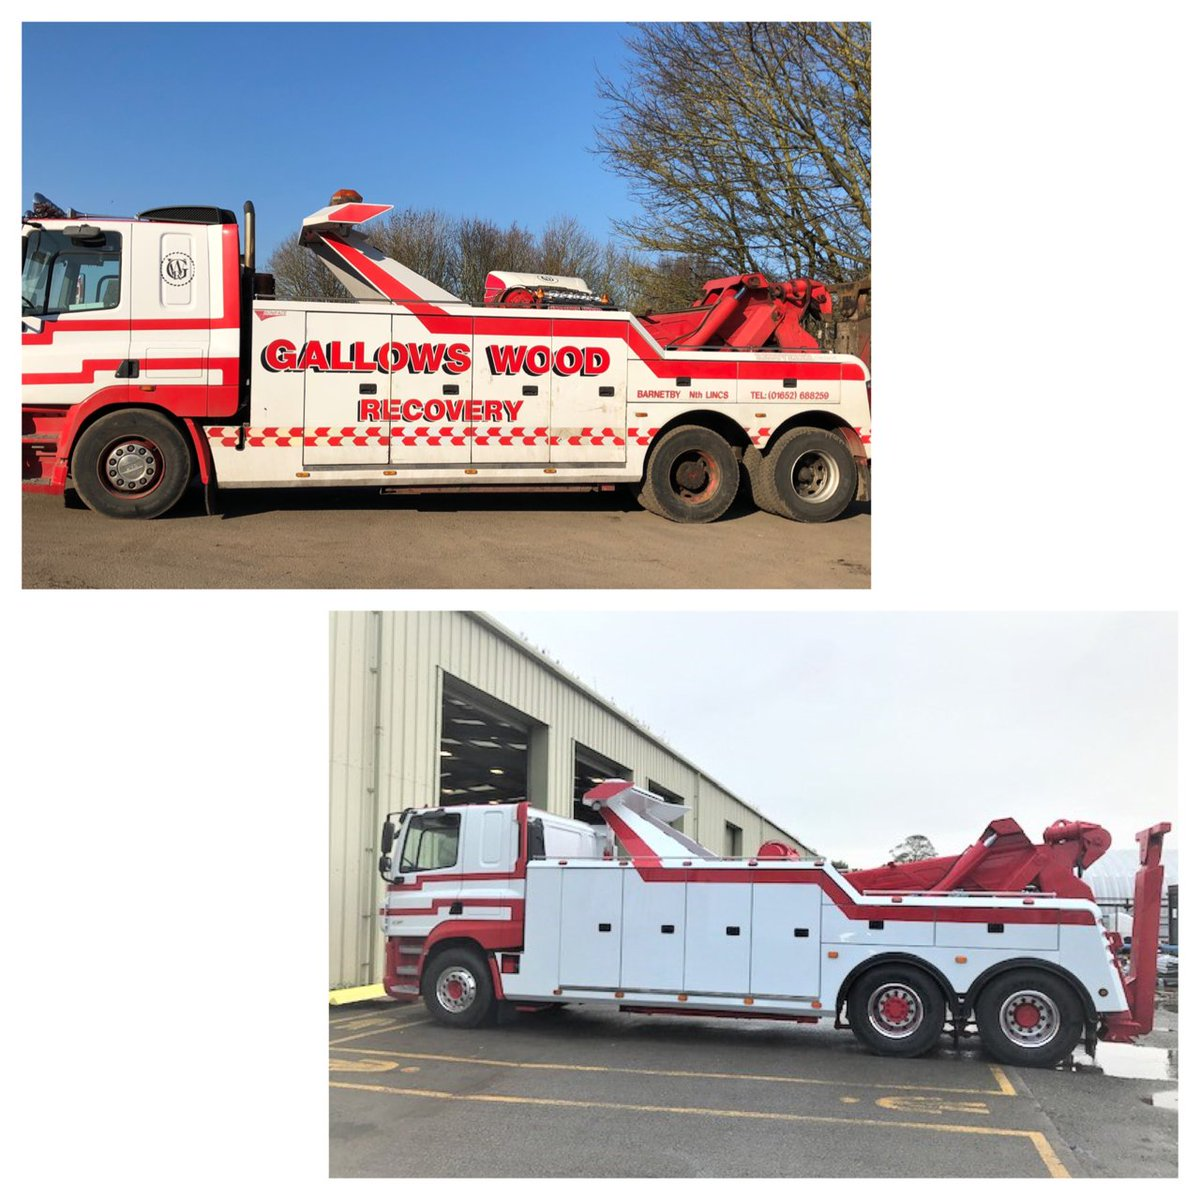 test Twitter Media - A #refurbishment carried out last year for Gallows Wood Recovery. Vehicle body and lifting equipment fully shot blasted,  re-painted and fitted to a new chassis. Painted to customer's livery using #Sikkins #LV352  #BeforeAndAfter #MWHull https://t.co/Rq6IQwf0Uo